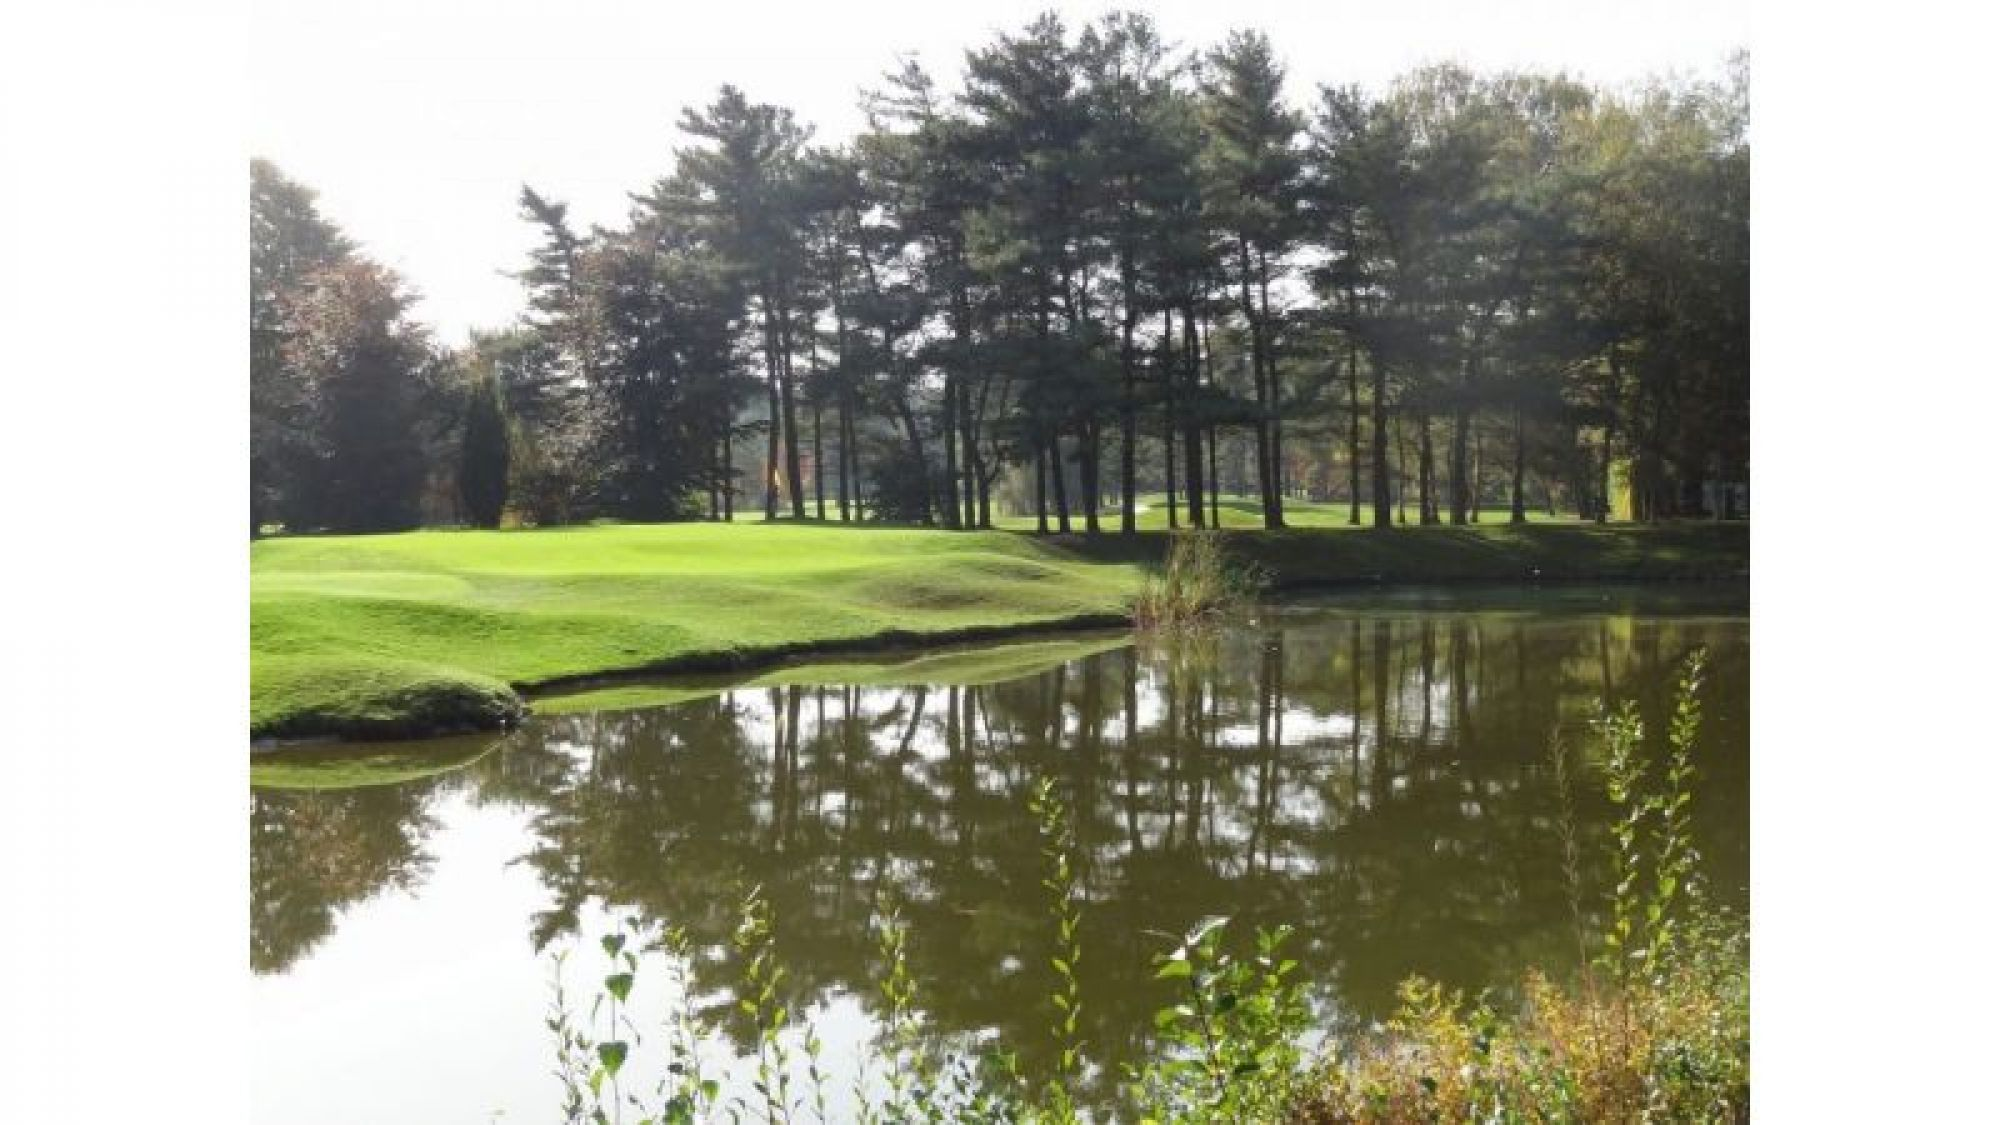 View Keerbergen Golf Club's picturesque golf course within striking Brussels Waterloo & Mons.